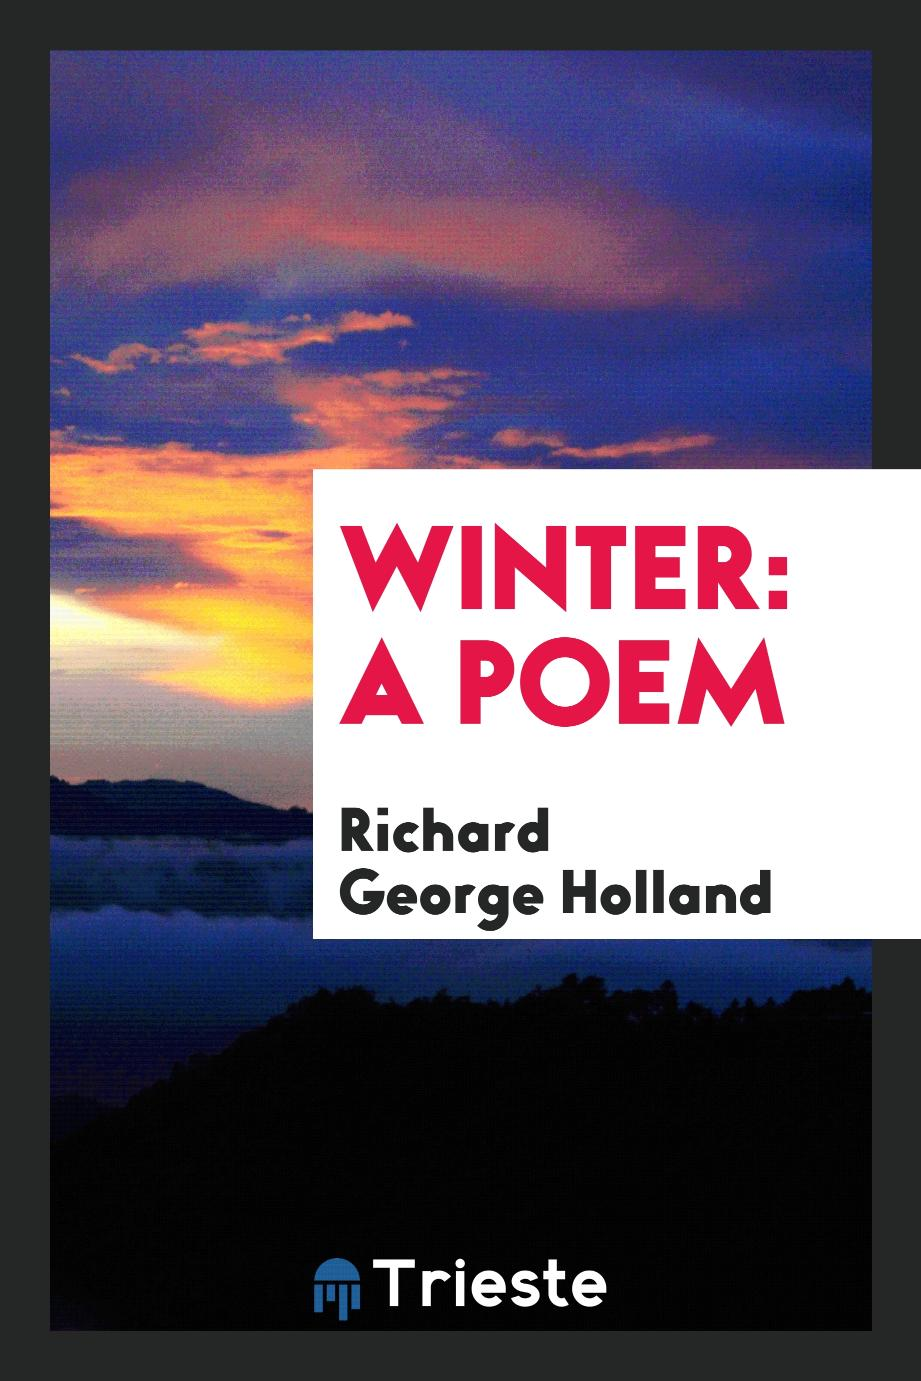 Richard George Holland - Winter: A Poem